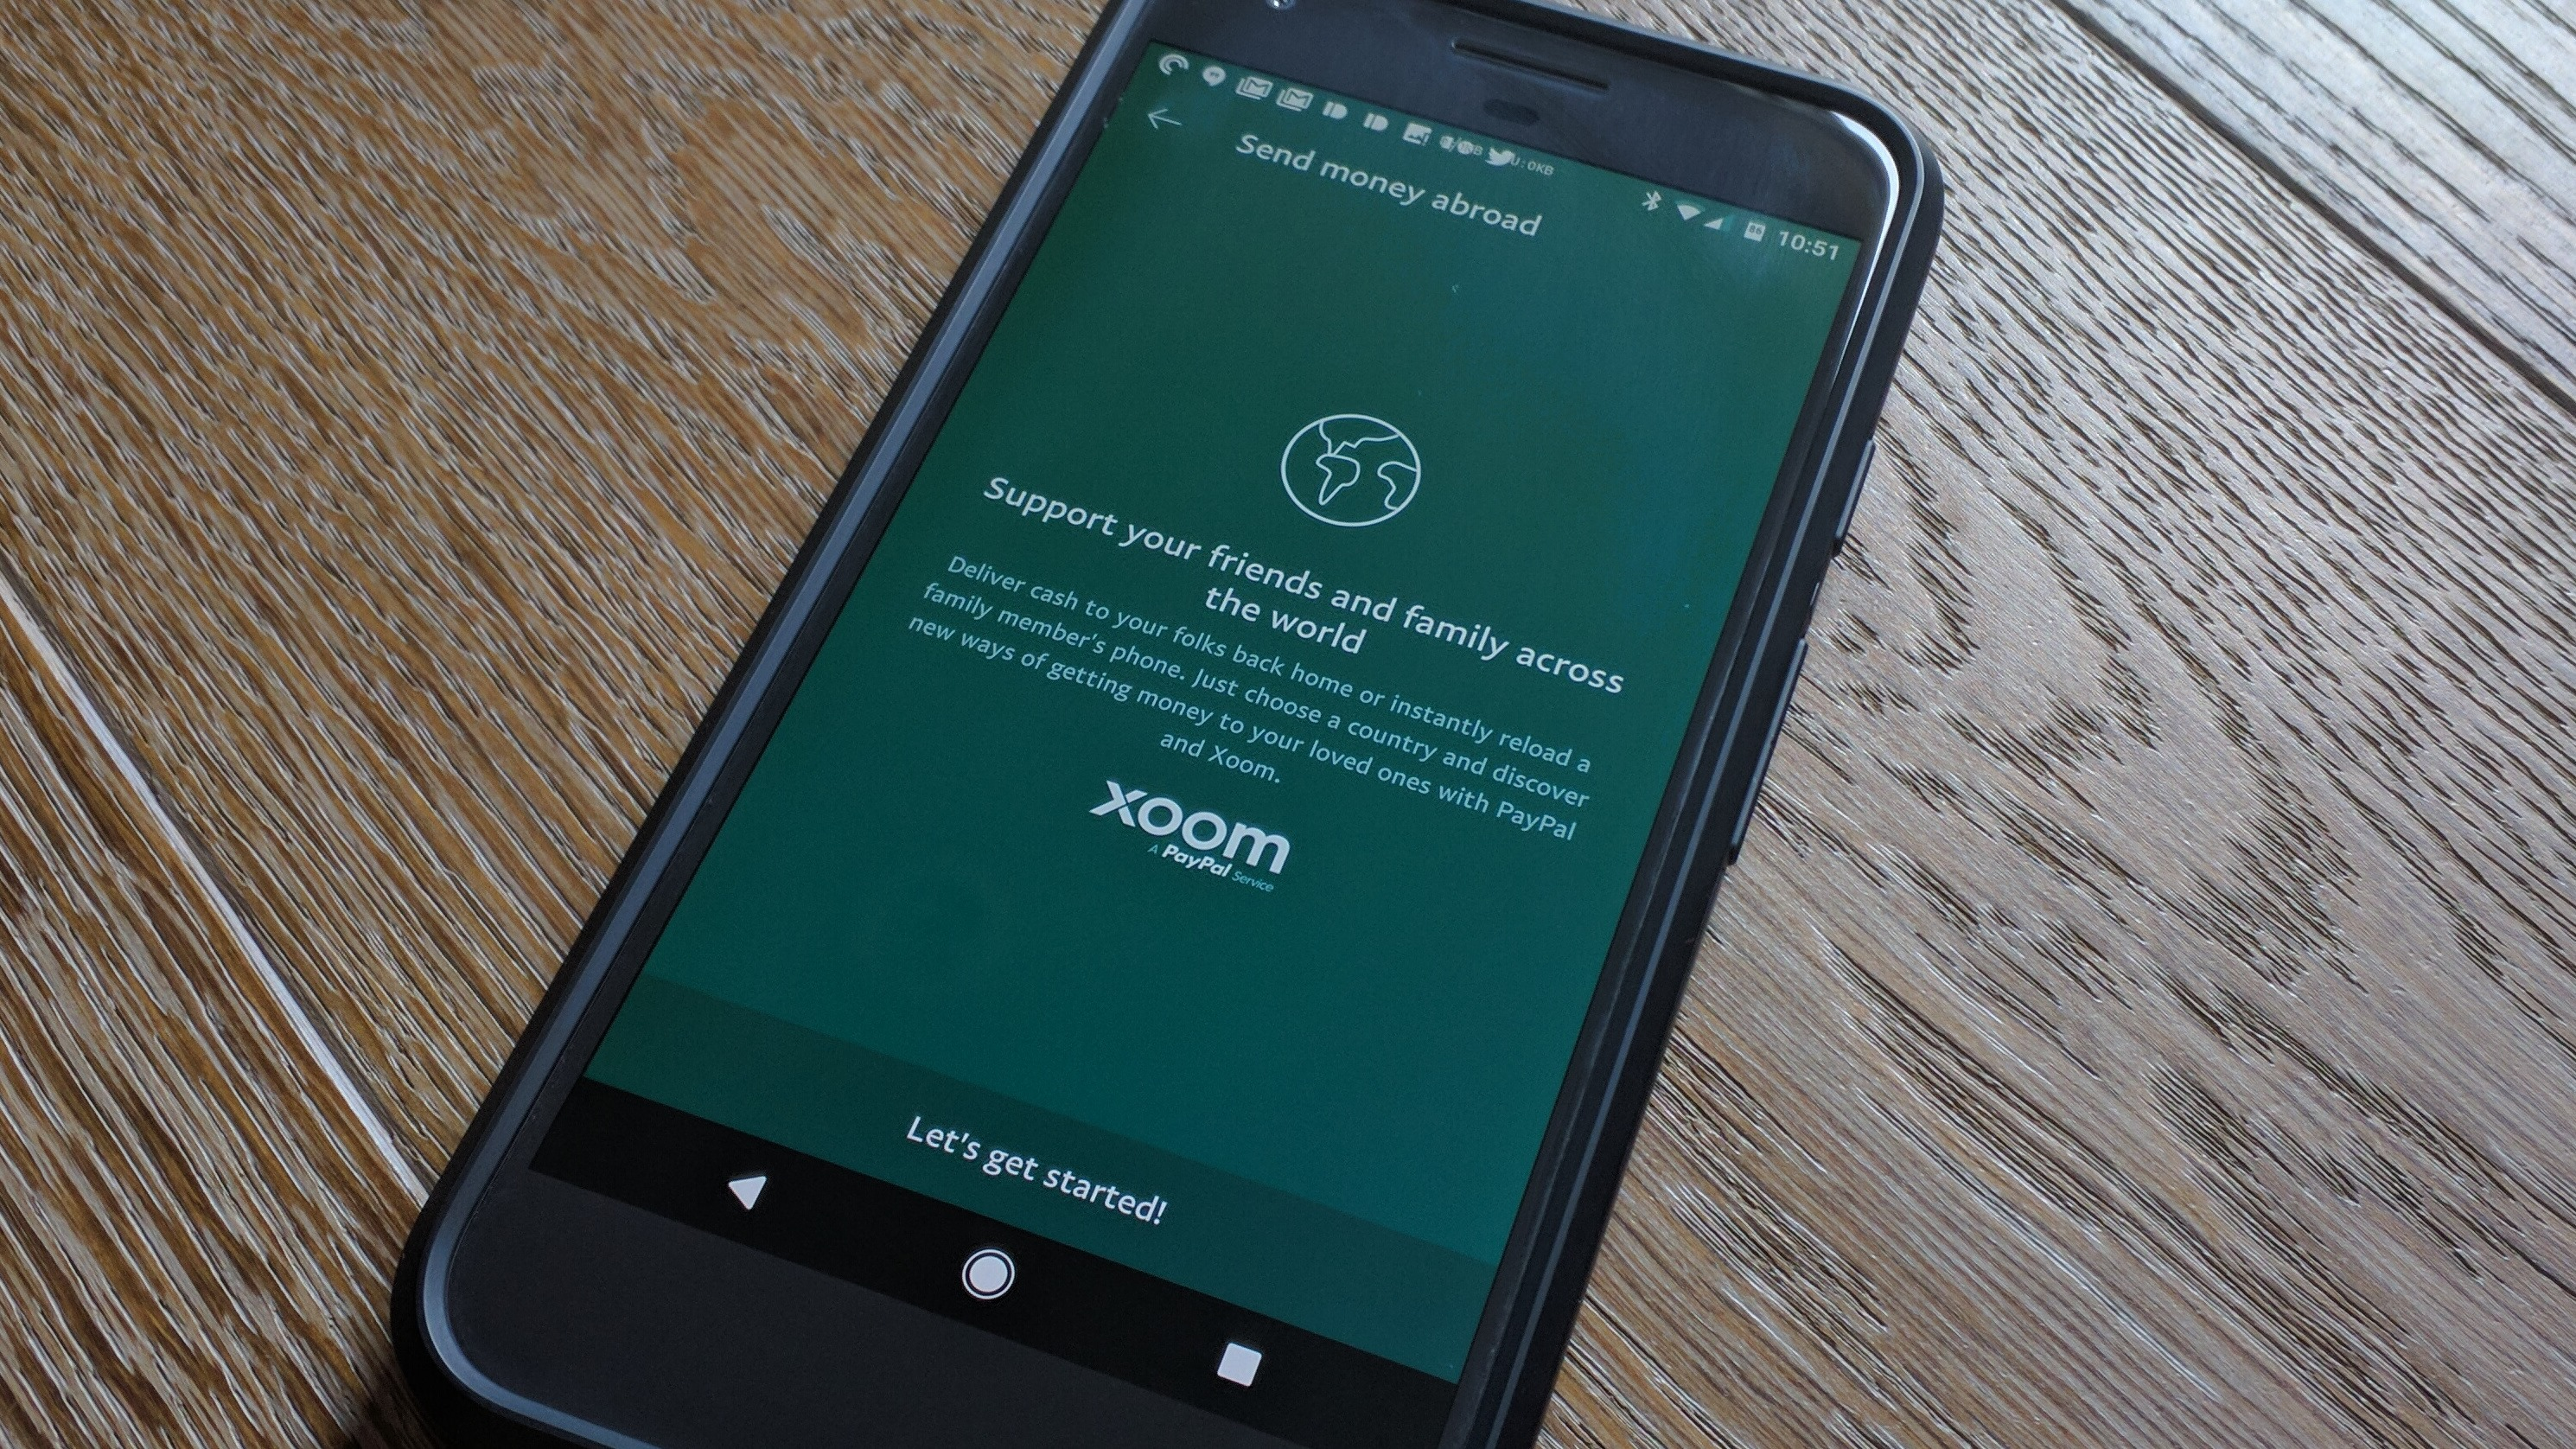 PayPal Android app updated with Xoom money sending features for 62